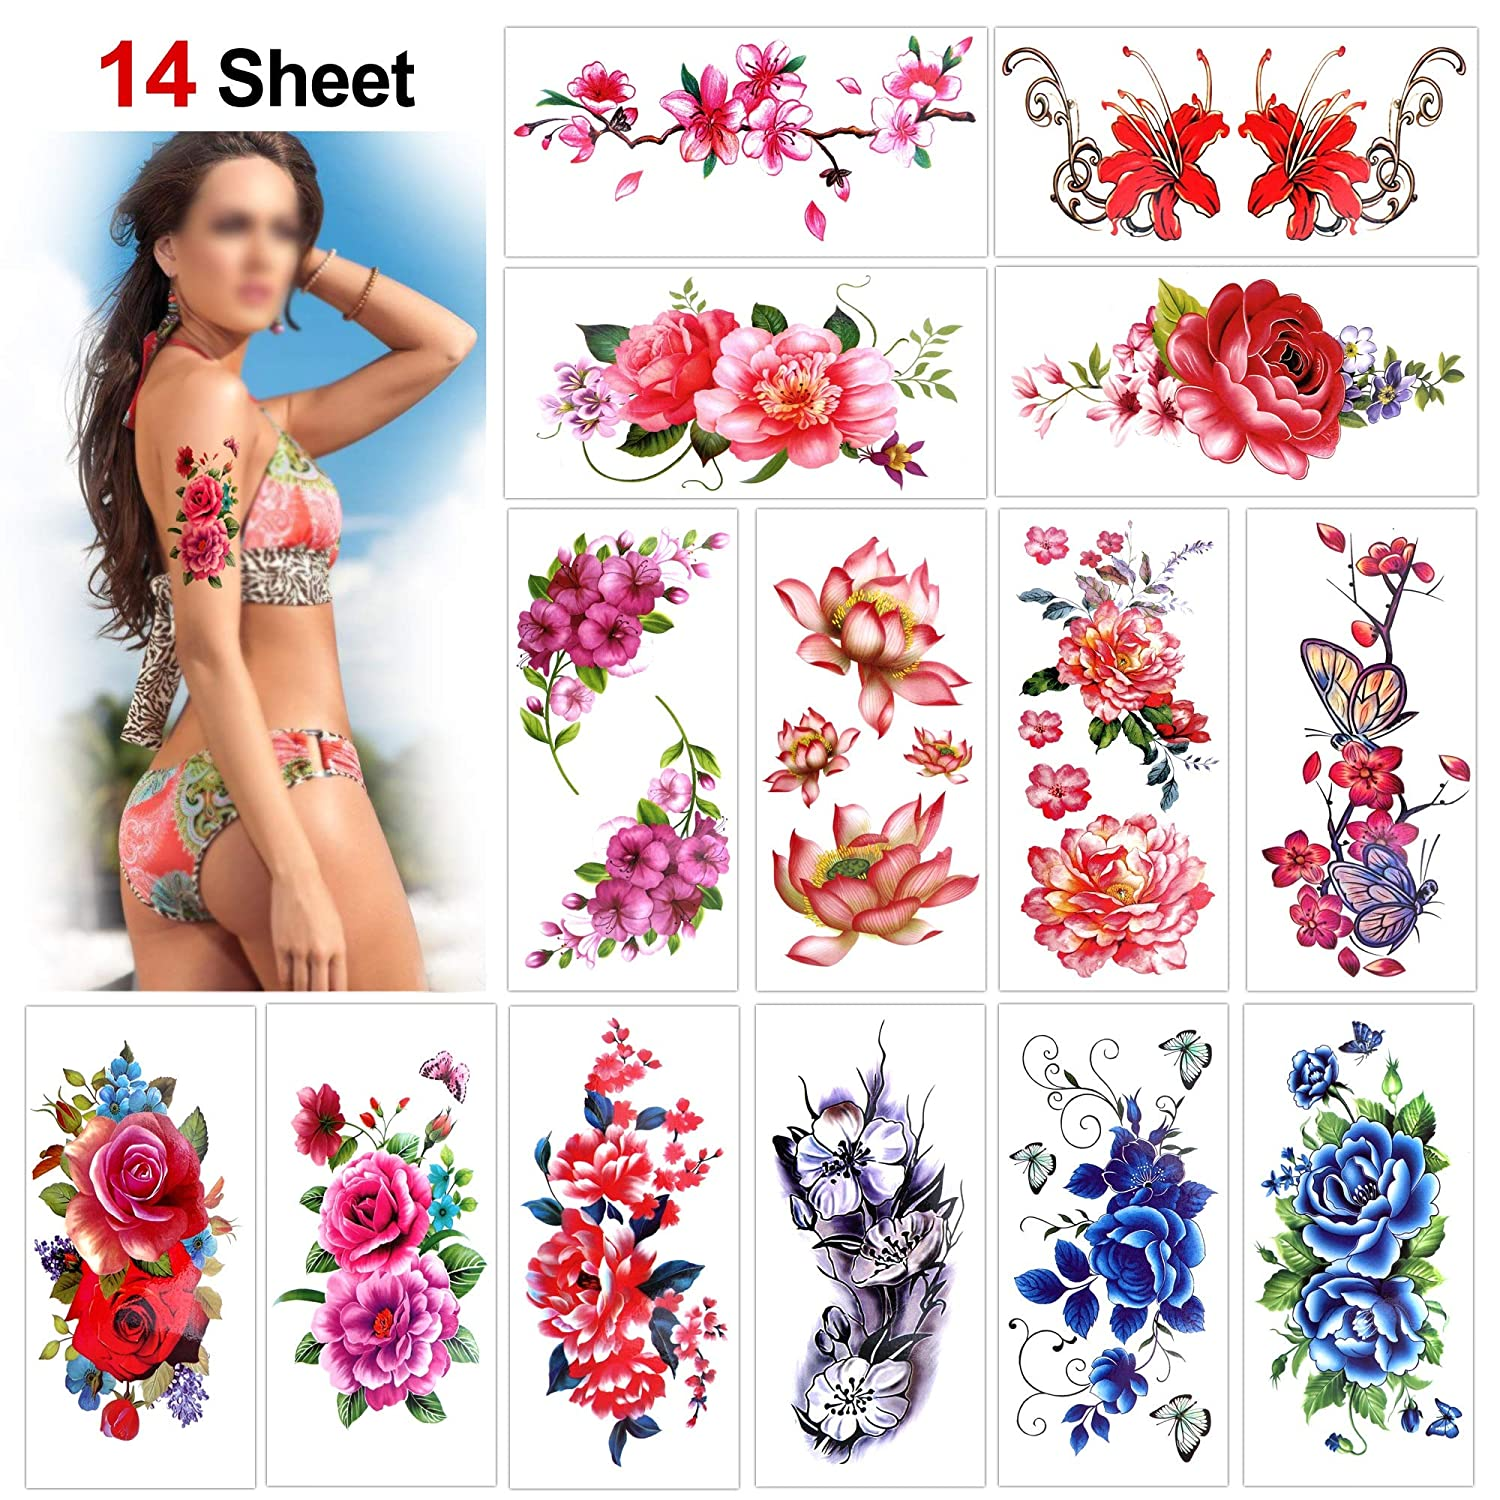 Flower Temporary Tattoos for Women Teens Girls(14 Sheets),Konsait Rose Lotus Cherry Blossoms Waterproof Temporary Tattoo Festival Flash Fake Tattoo Body Art Stickers for Summer Beach Pool Party